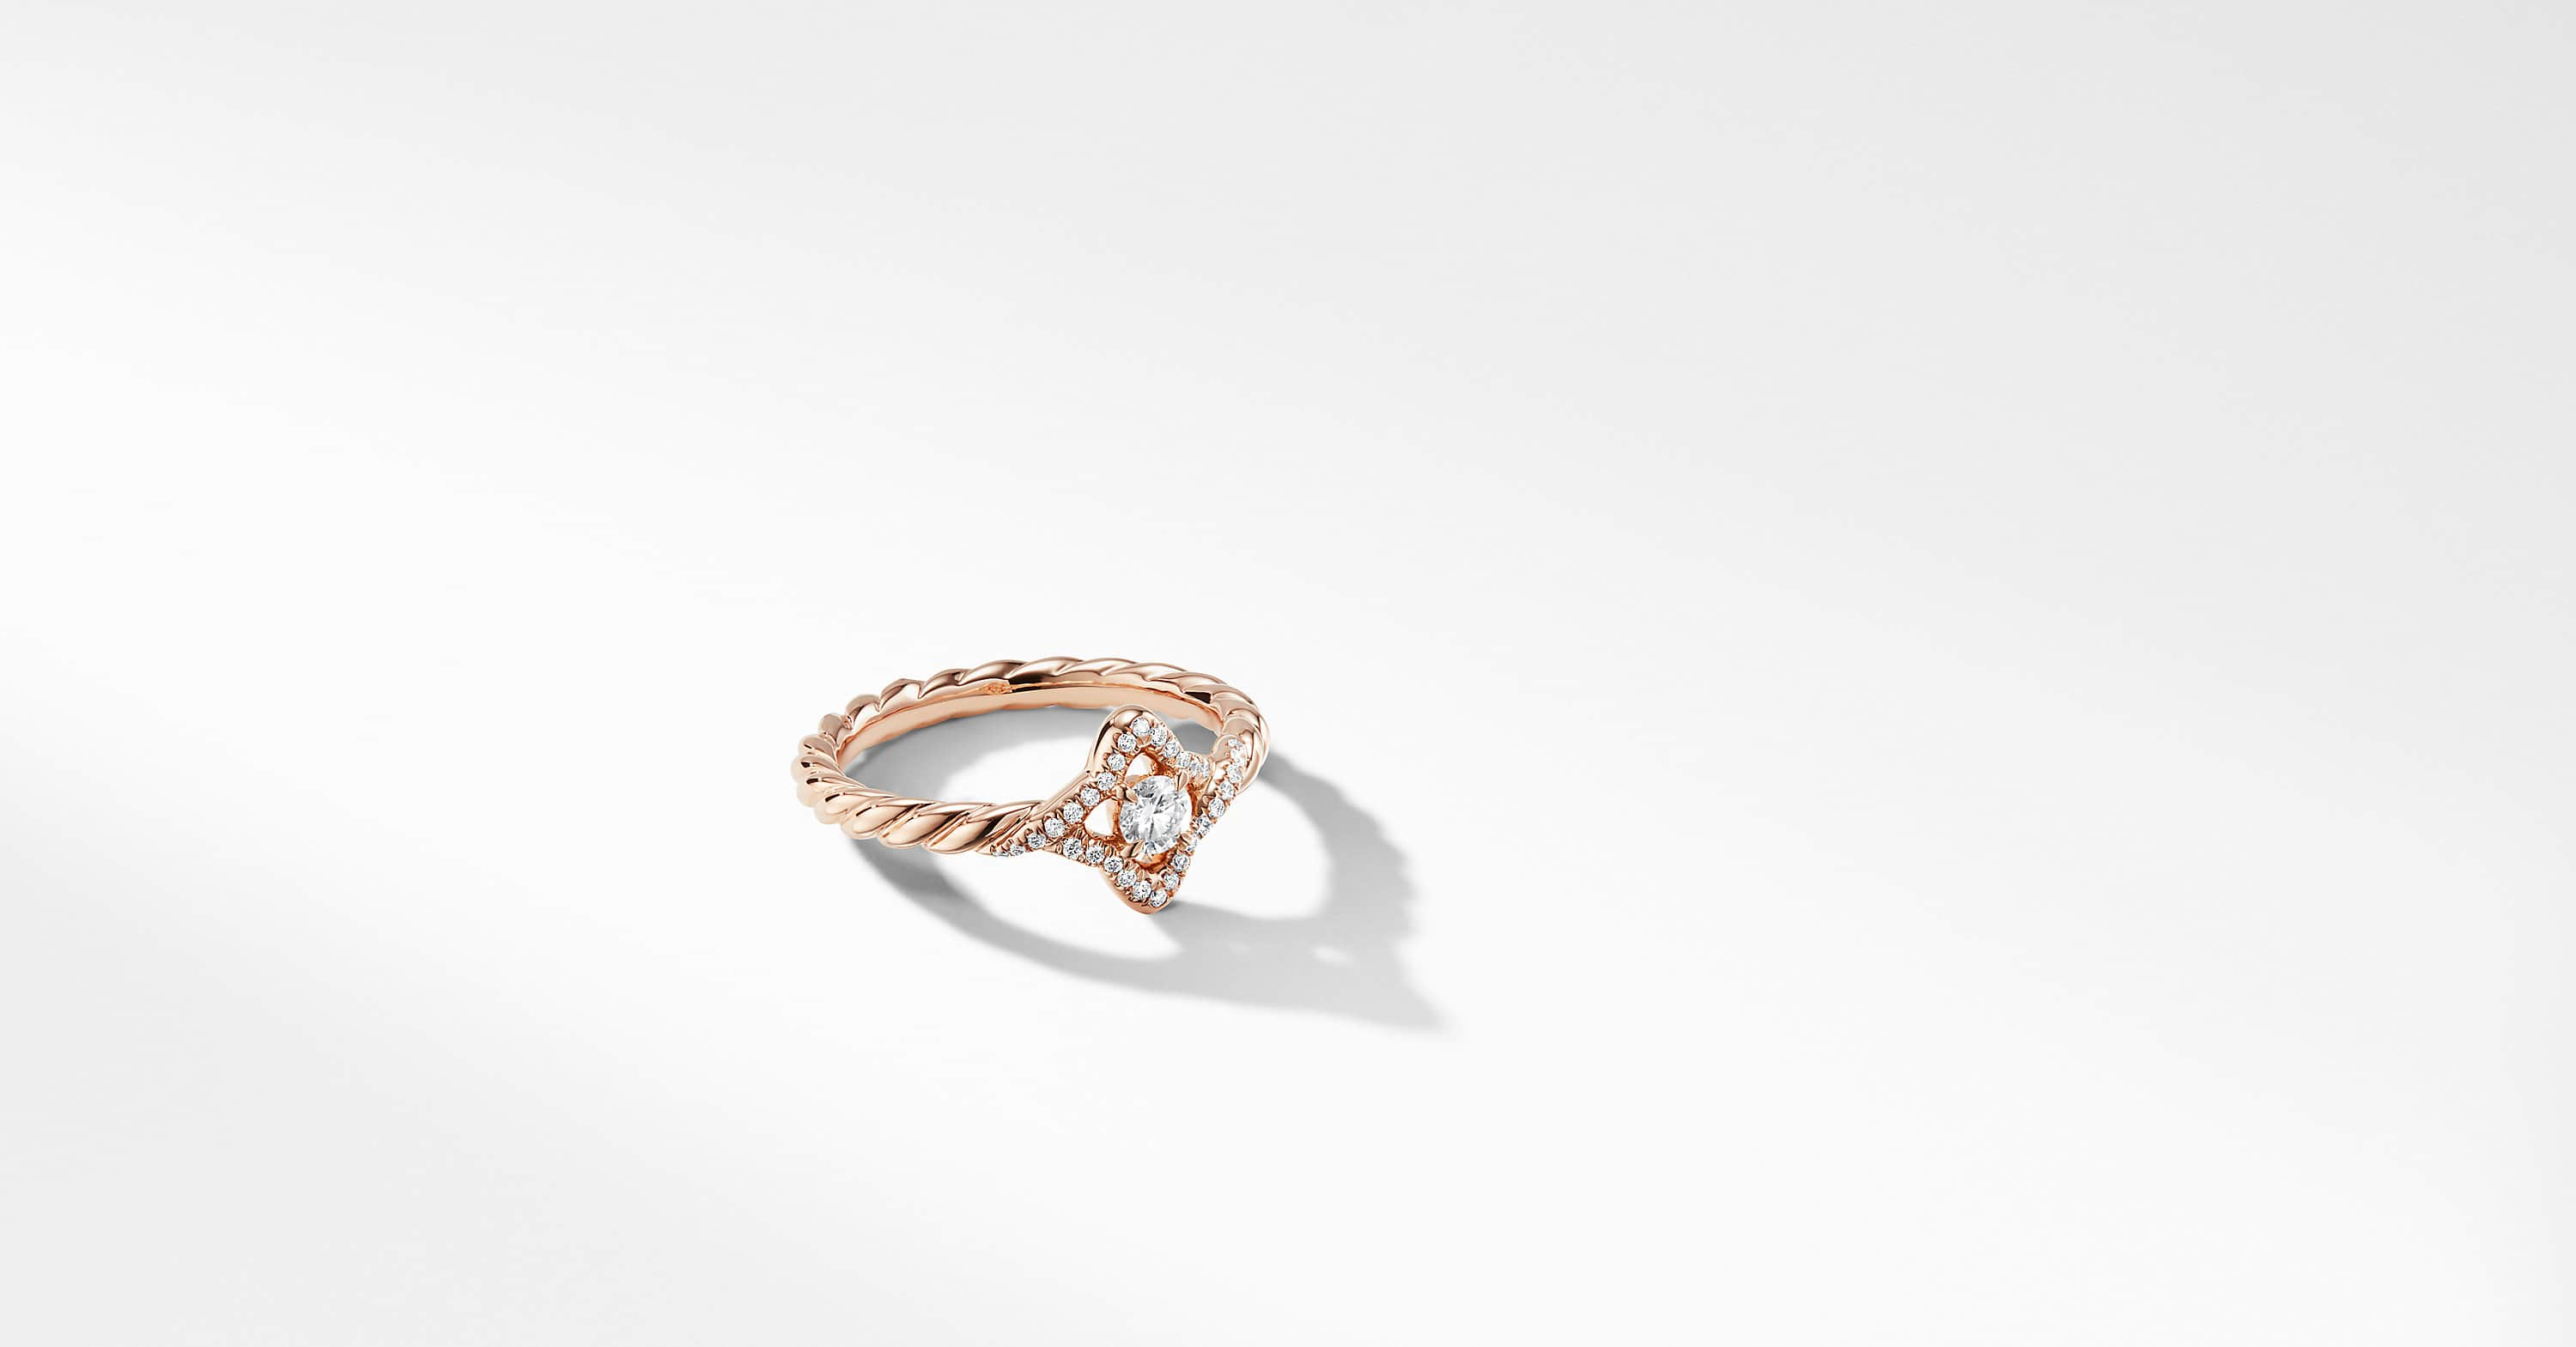 Bague Venetian Quatrefoil en or rose 18 carats et diamants